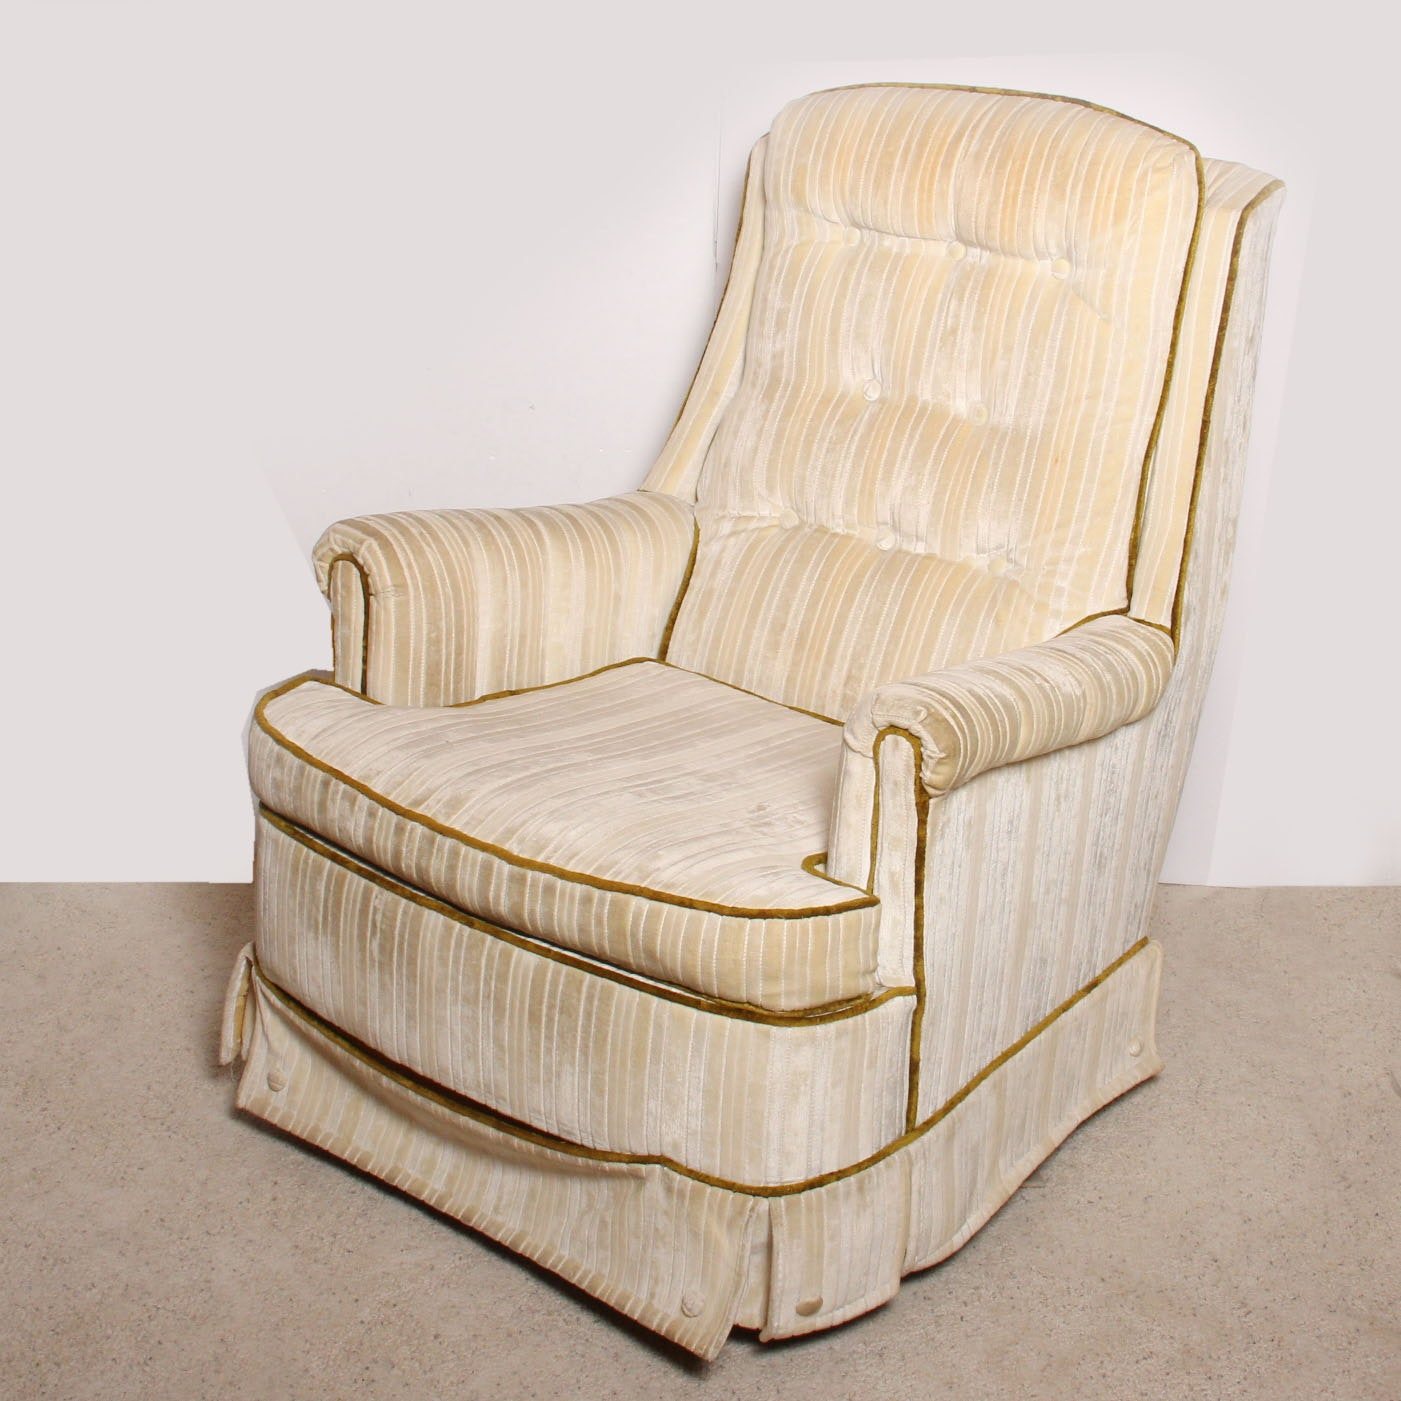 Upholstered Swivel Rocking Chair By Pontiac ...